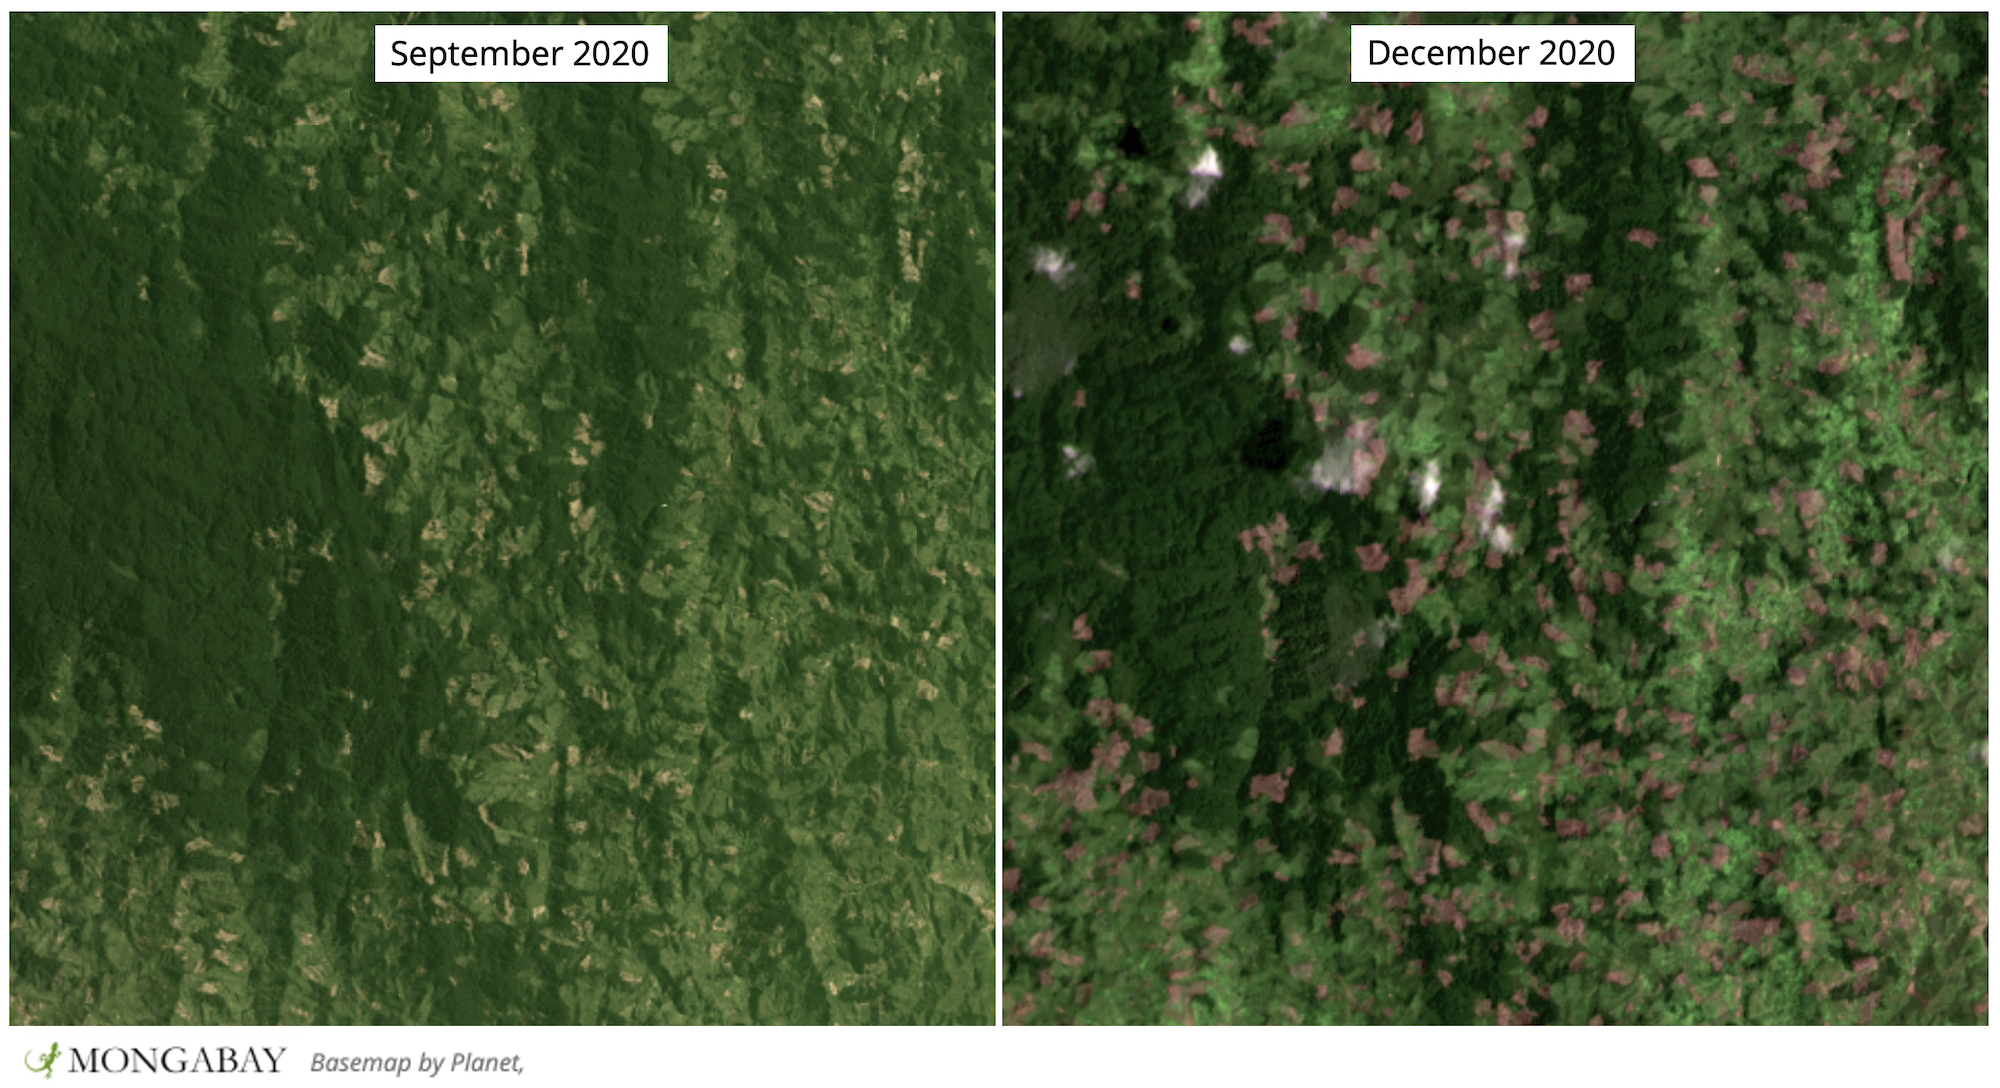 Satellite imagery shows rapid deforestation in CAZ in late 2020.